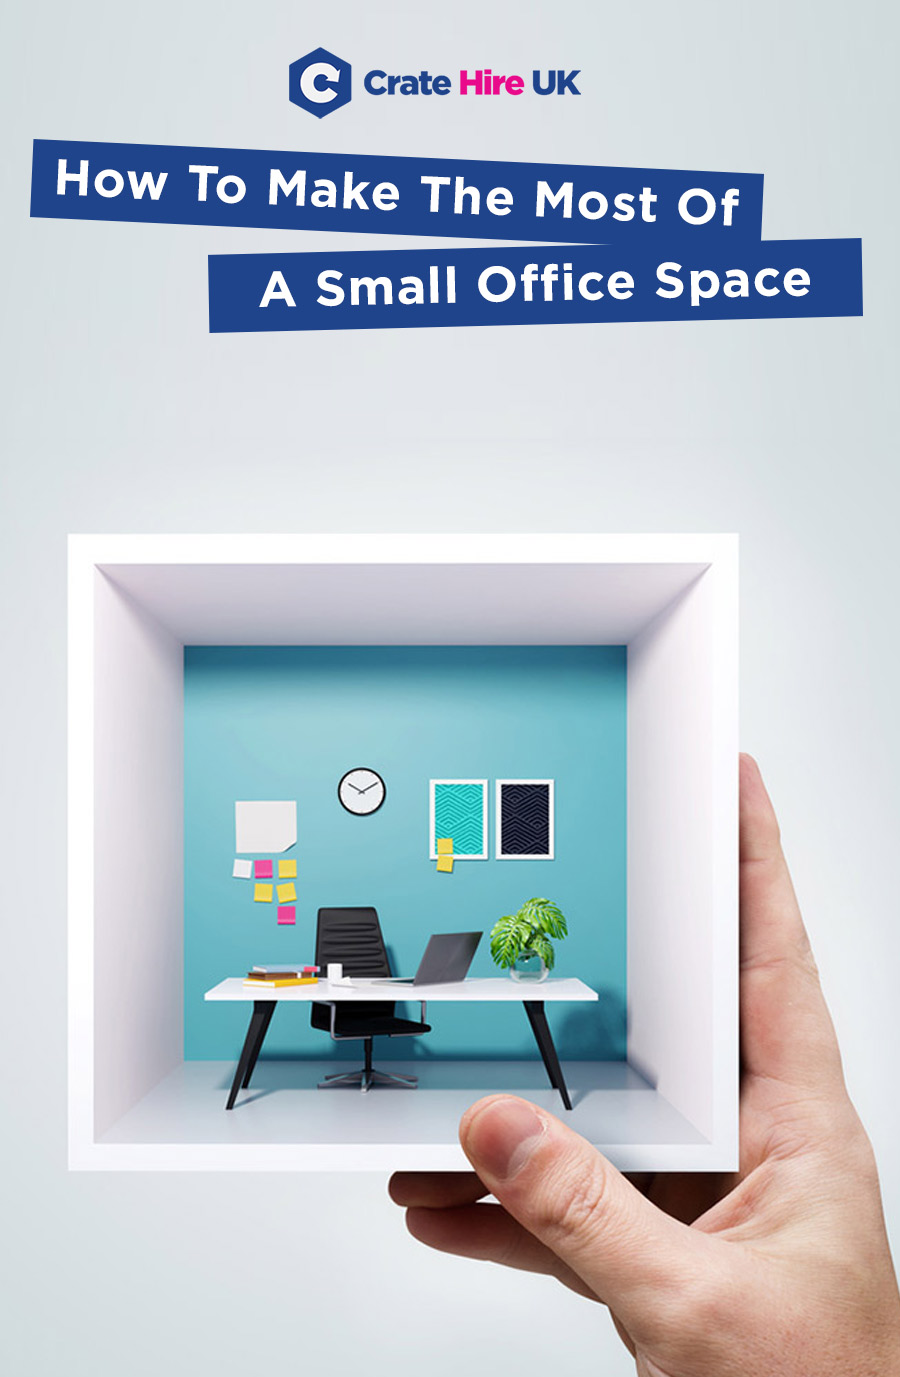 Small office space tips